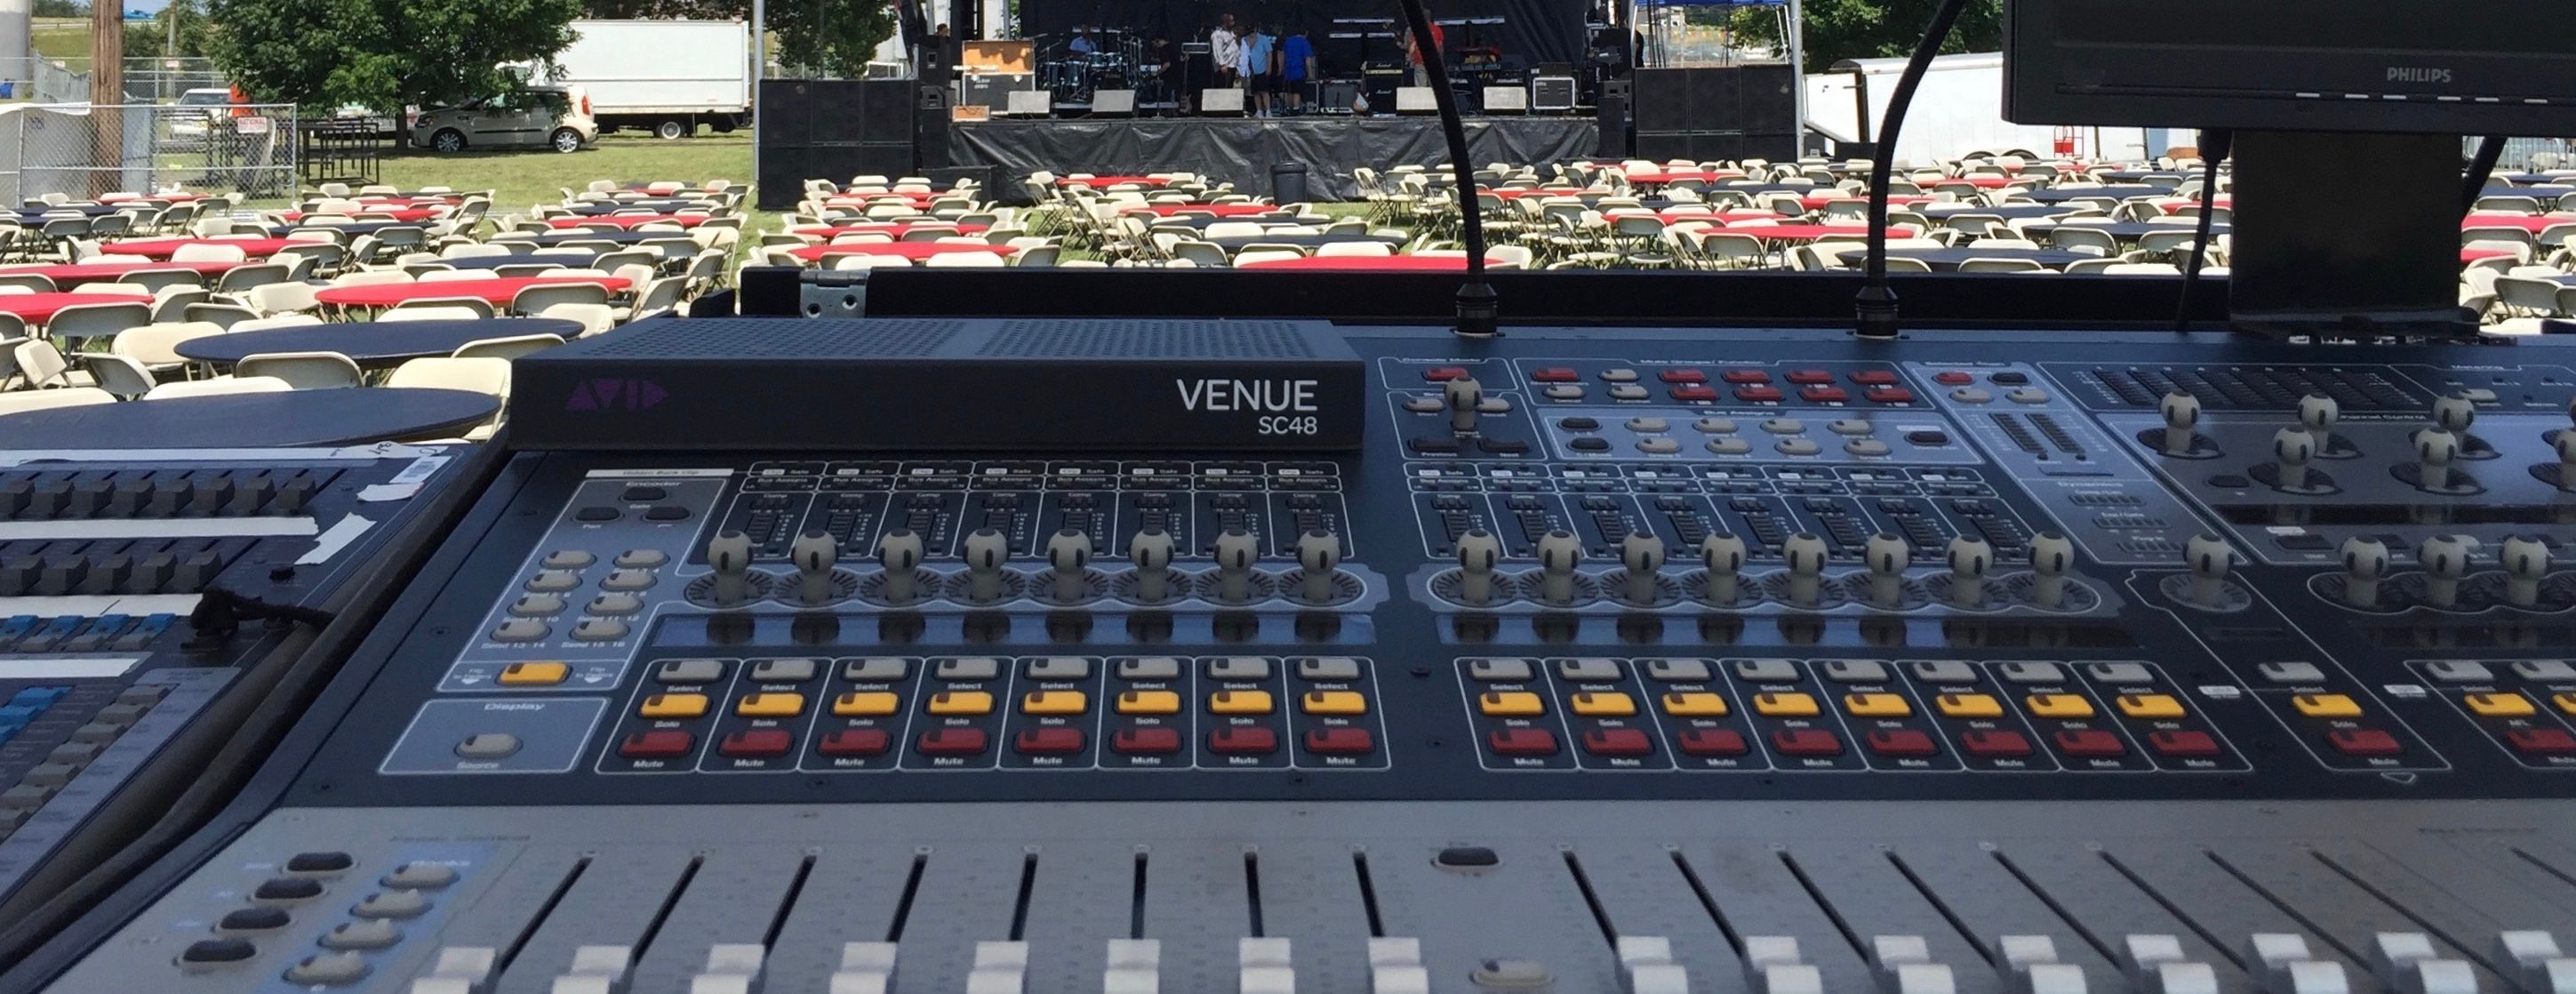 Audio mixer at event